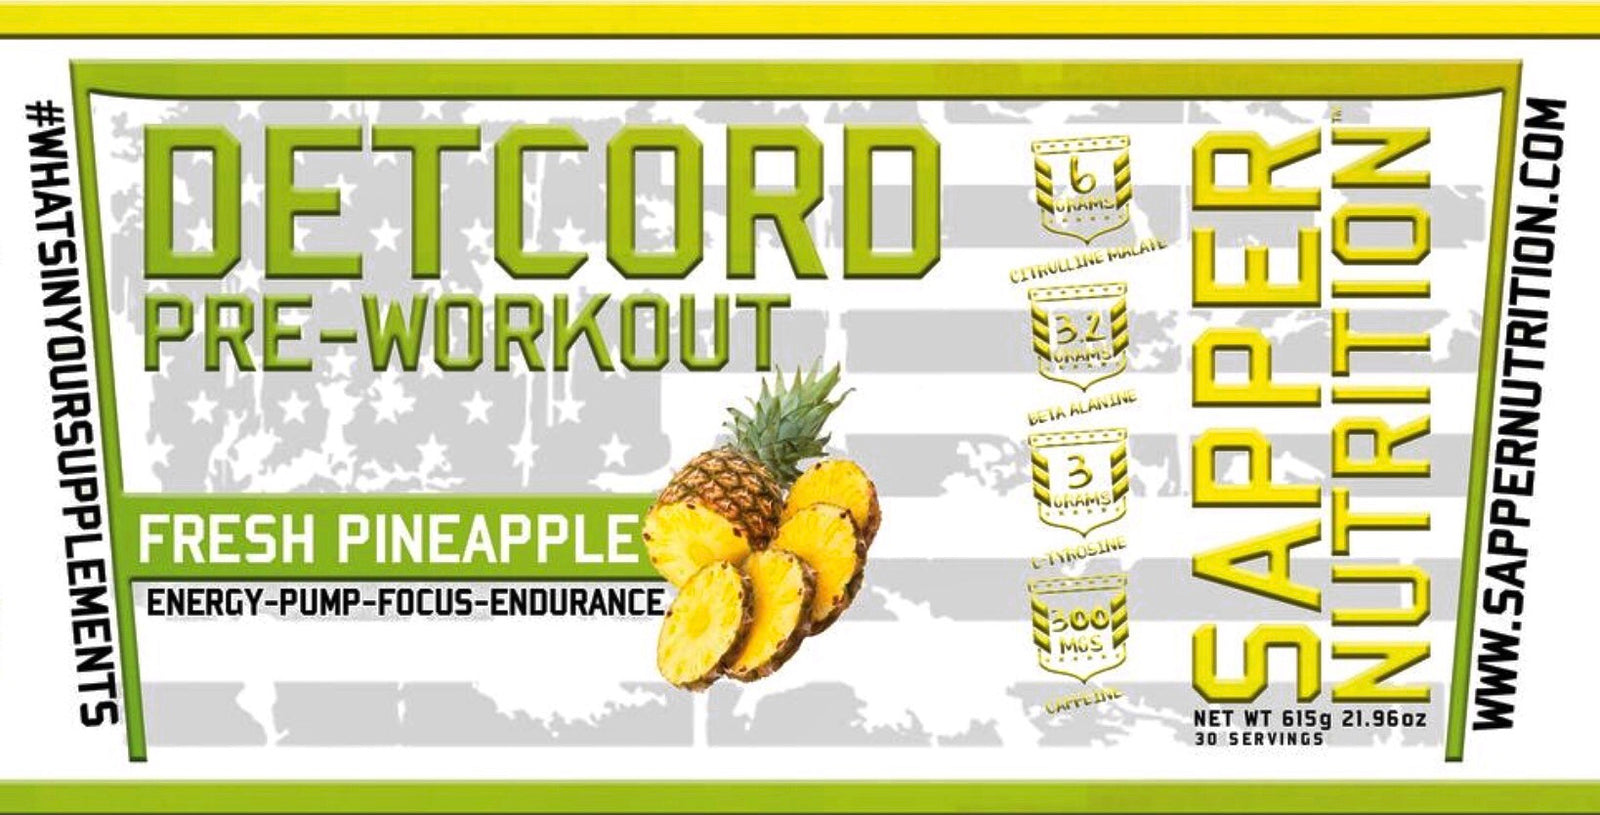 Detcord Pre Workout | Fresh Pineapple